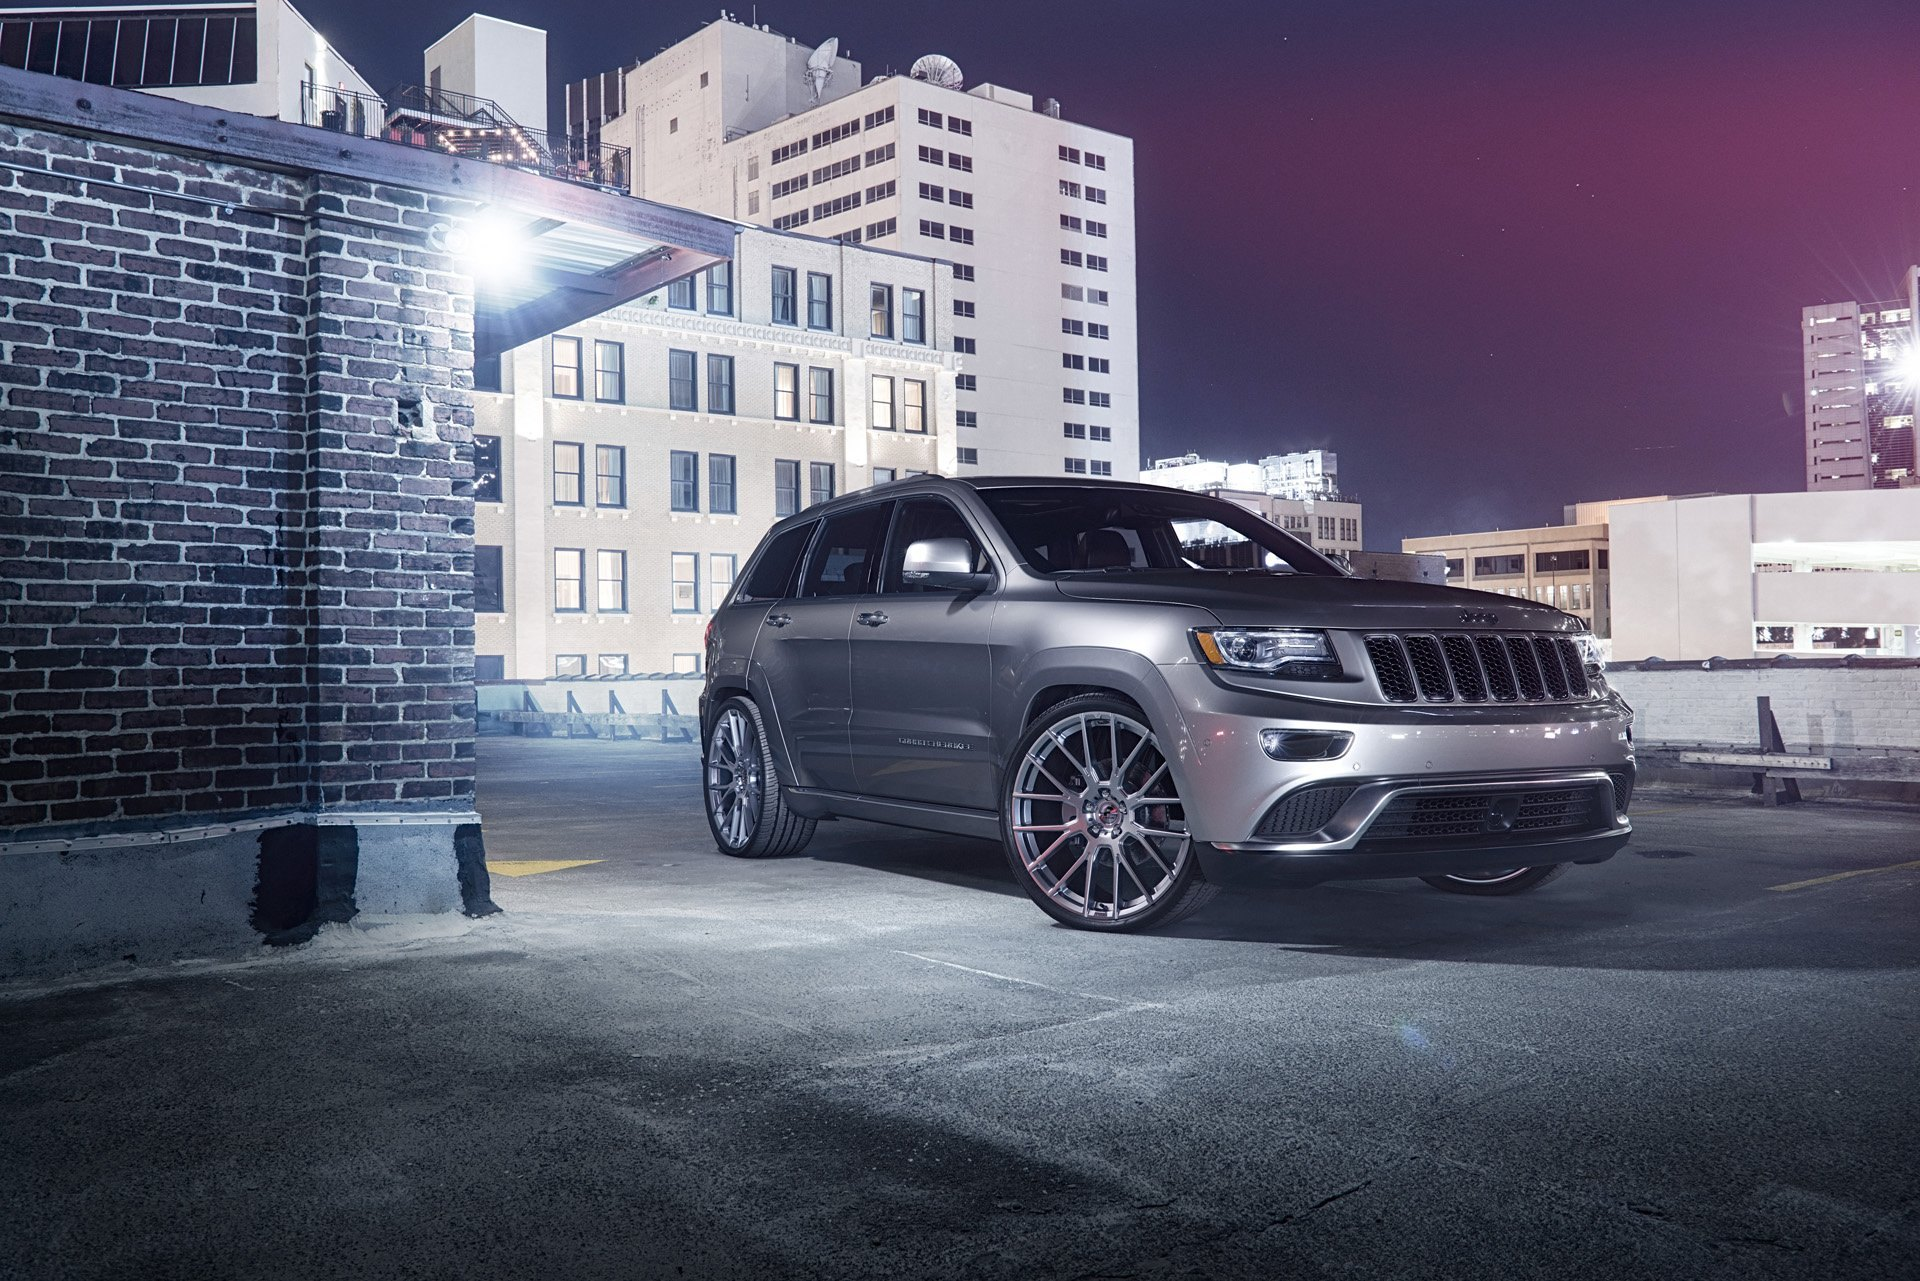 Gray Jeep Grand Cherokee With Aftermarket Front Bumper   Photo By Forgiato